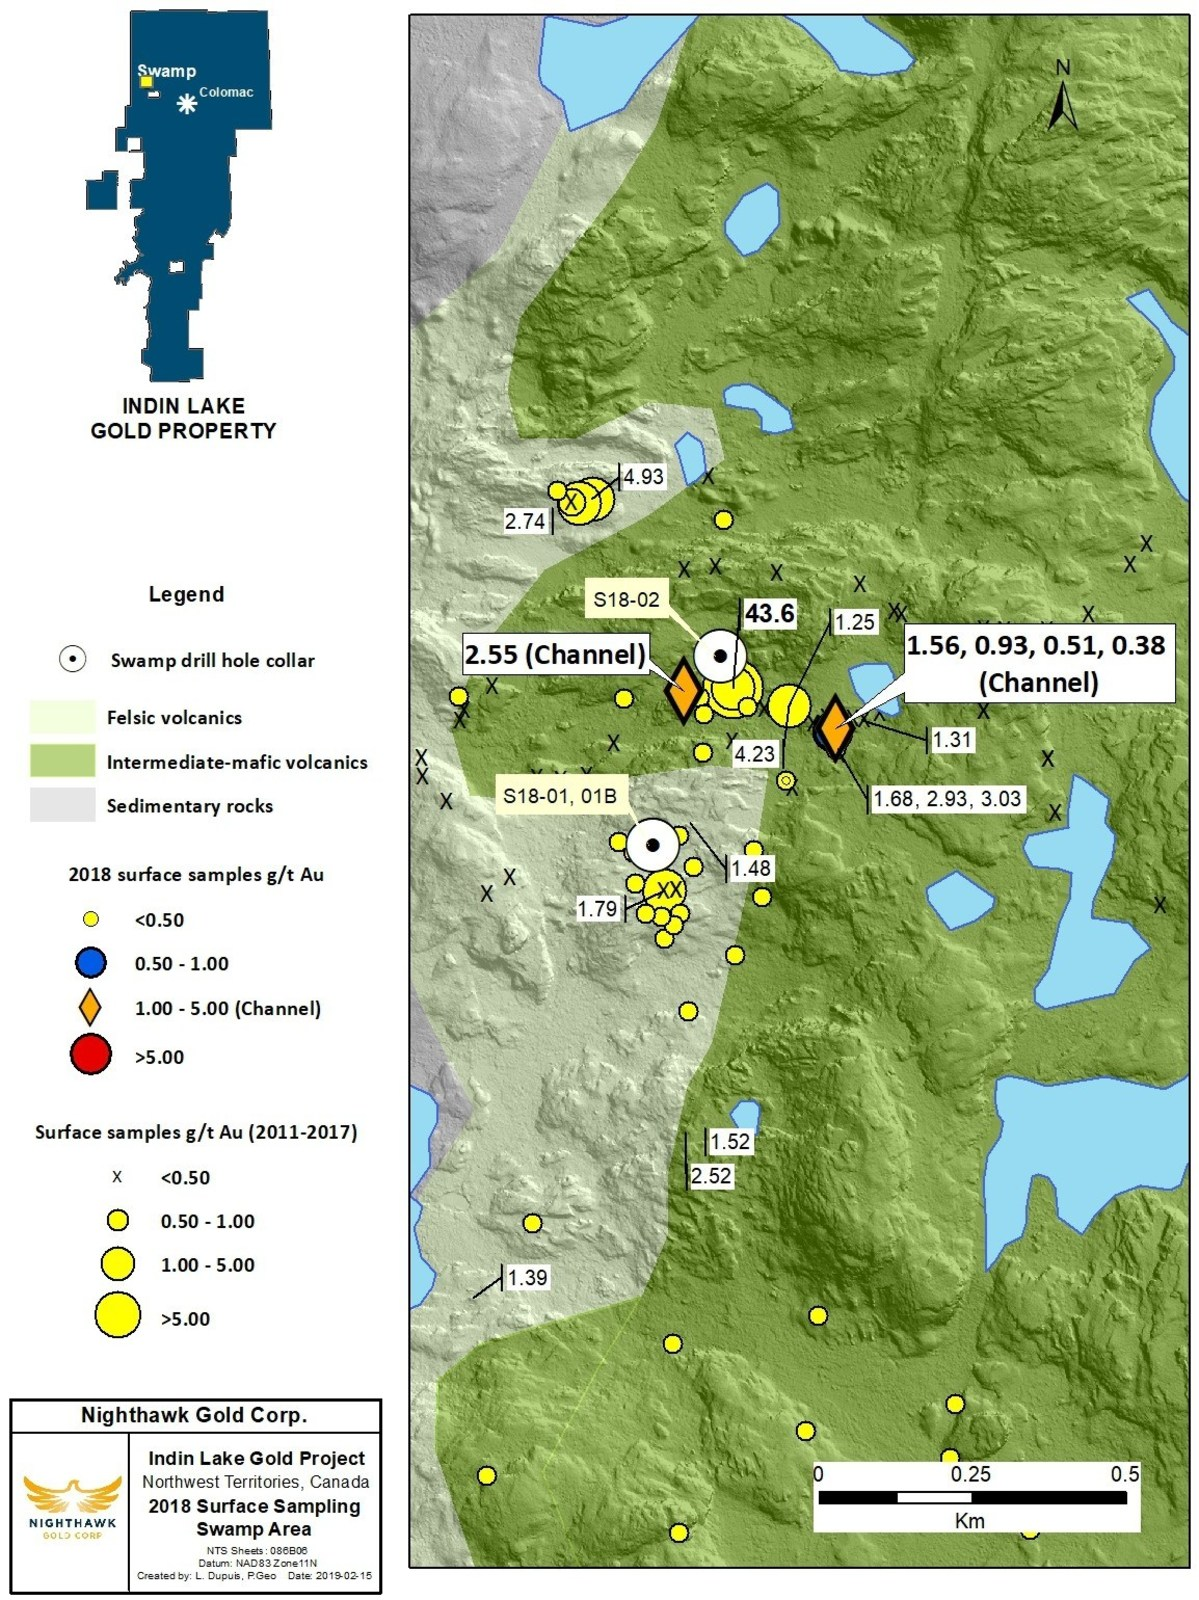 Figure 7. Swamp Location Map and Select Surface Sample Results